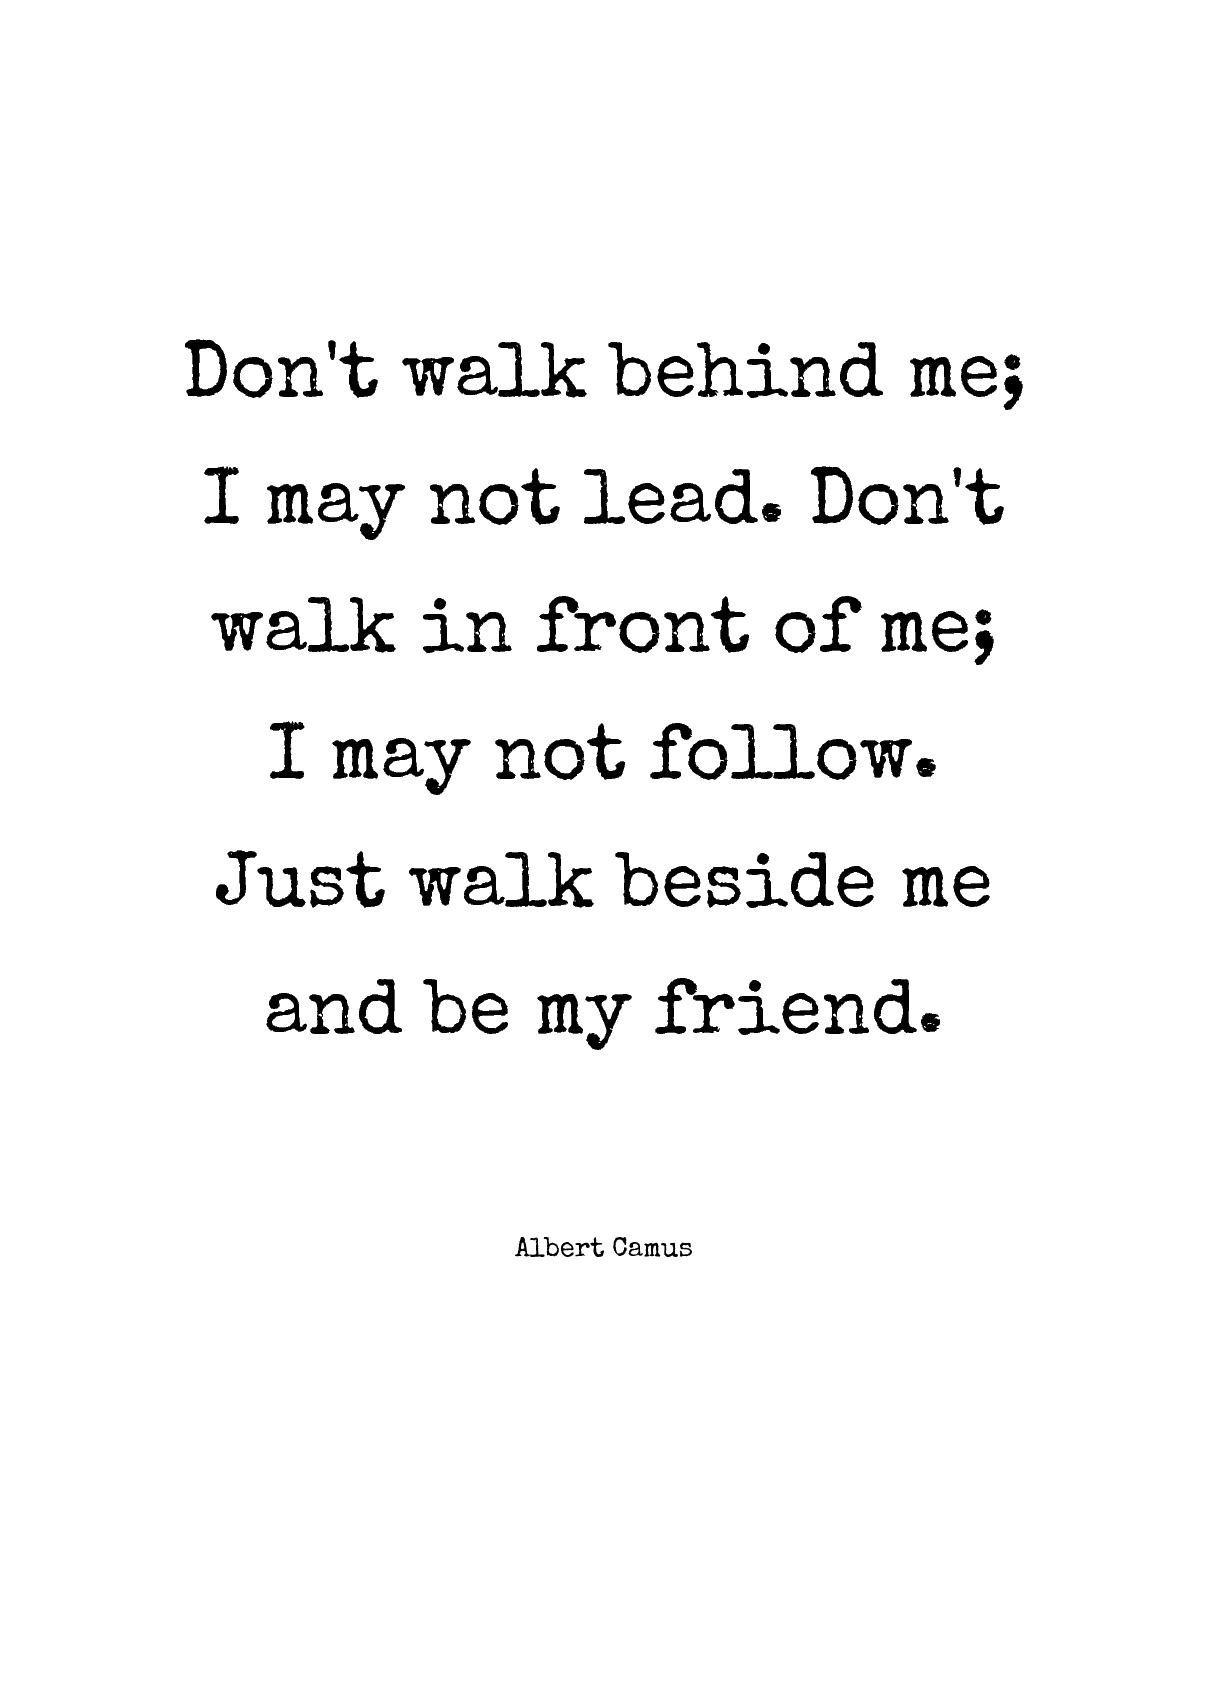 Don T Walk Behind Me I May Not Lead Don T Walk In Front Of Me I May Not Follow Just Walk Beside Me And Be My Friend By Albert Camus Daily Inspiration